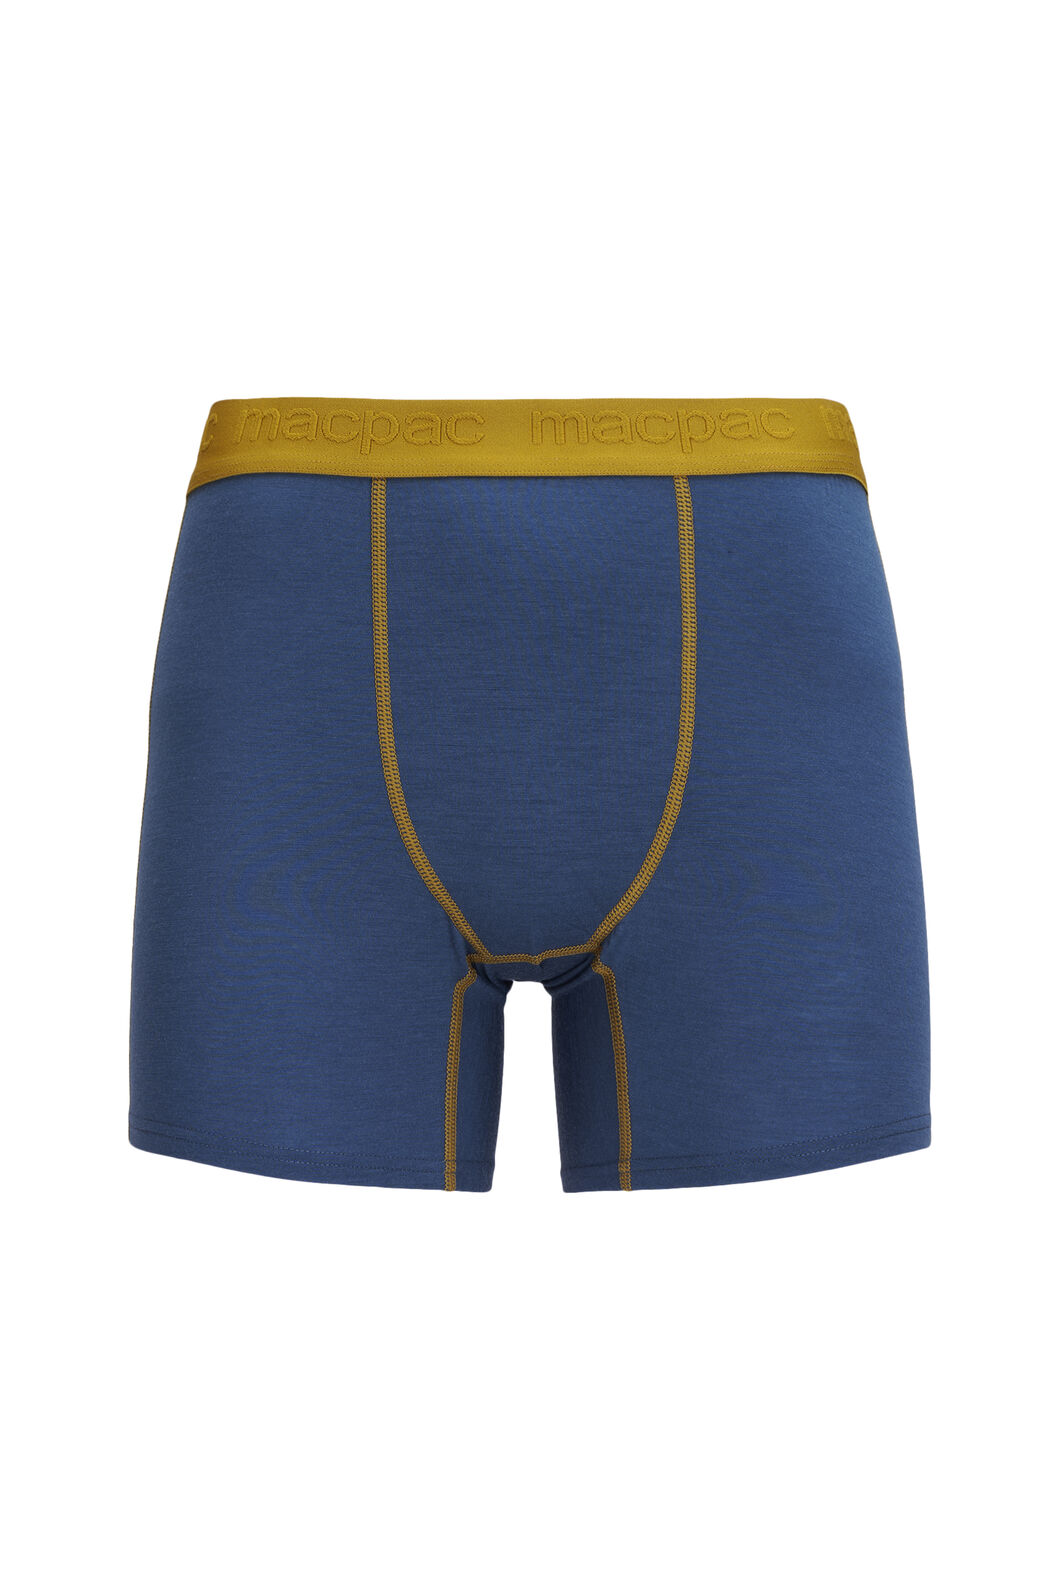 Men's 180 Merino Boxers, Orion Blue/Dried Tussock, hi-res